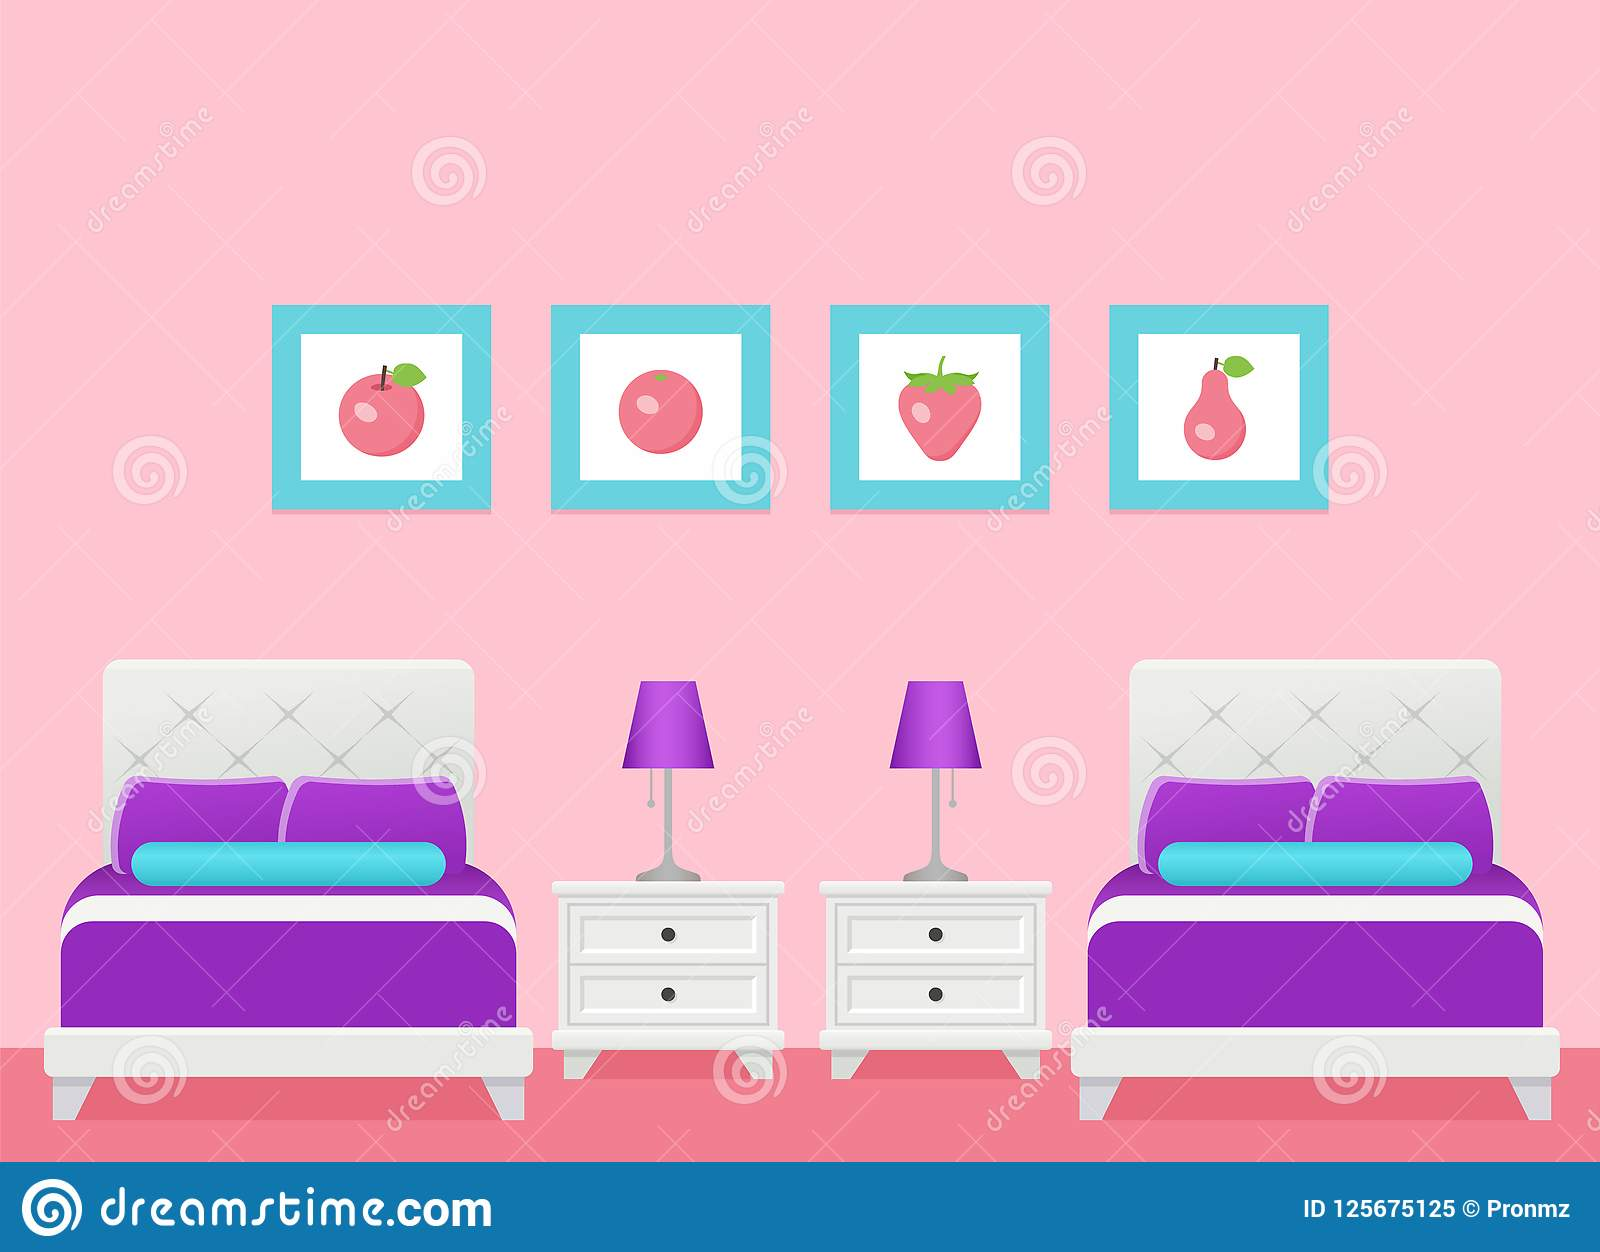 Hotel Room Interior With Two Beds Bedroom Vector Illustration